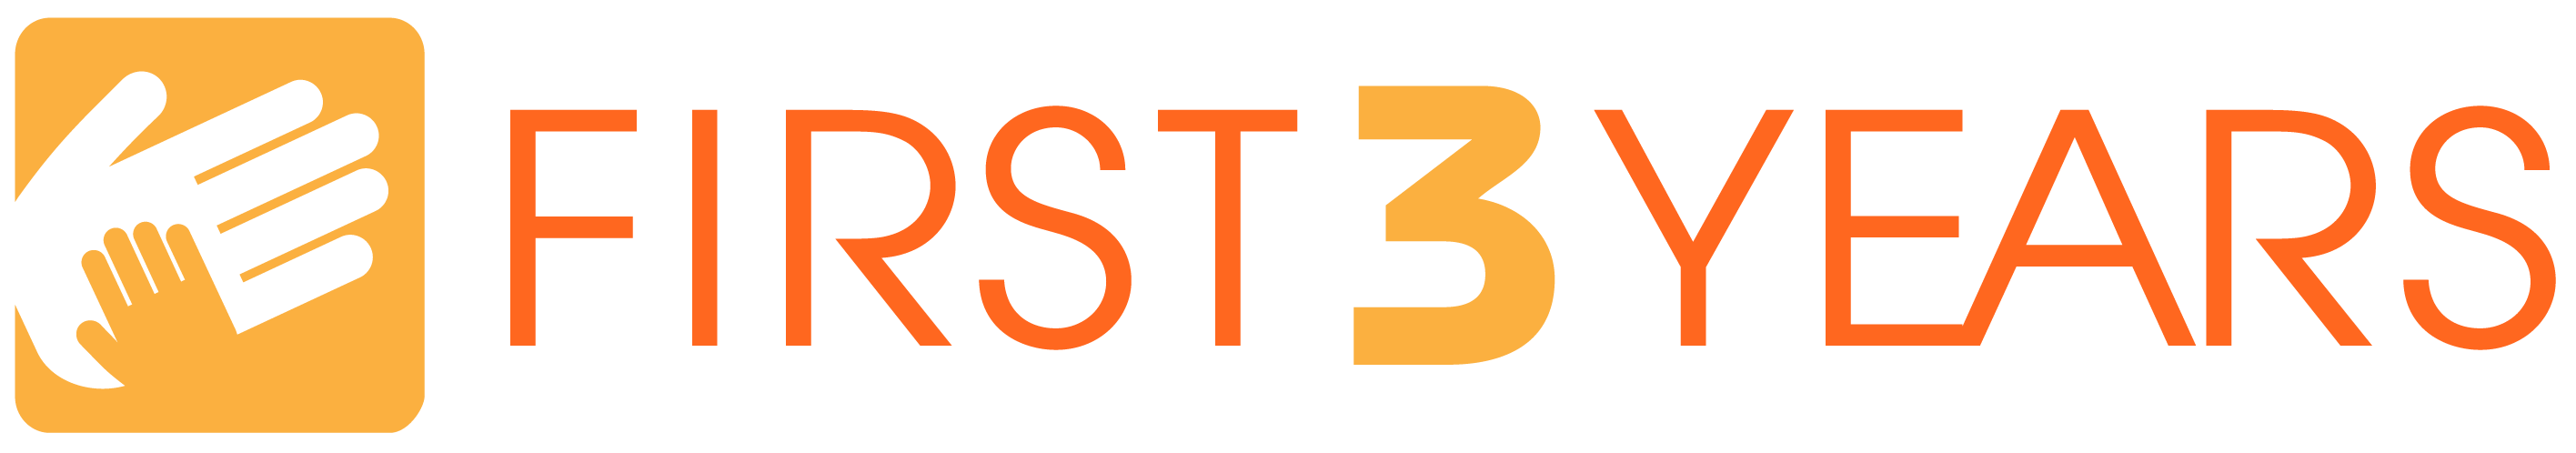 First 3 Years Logo